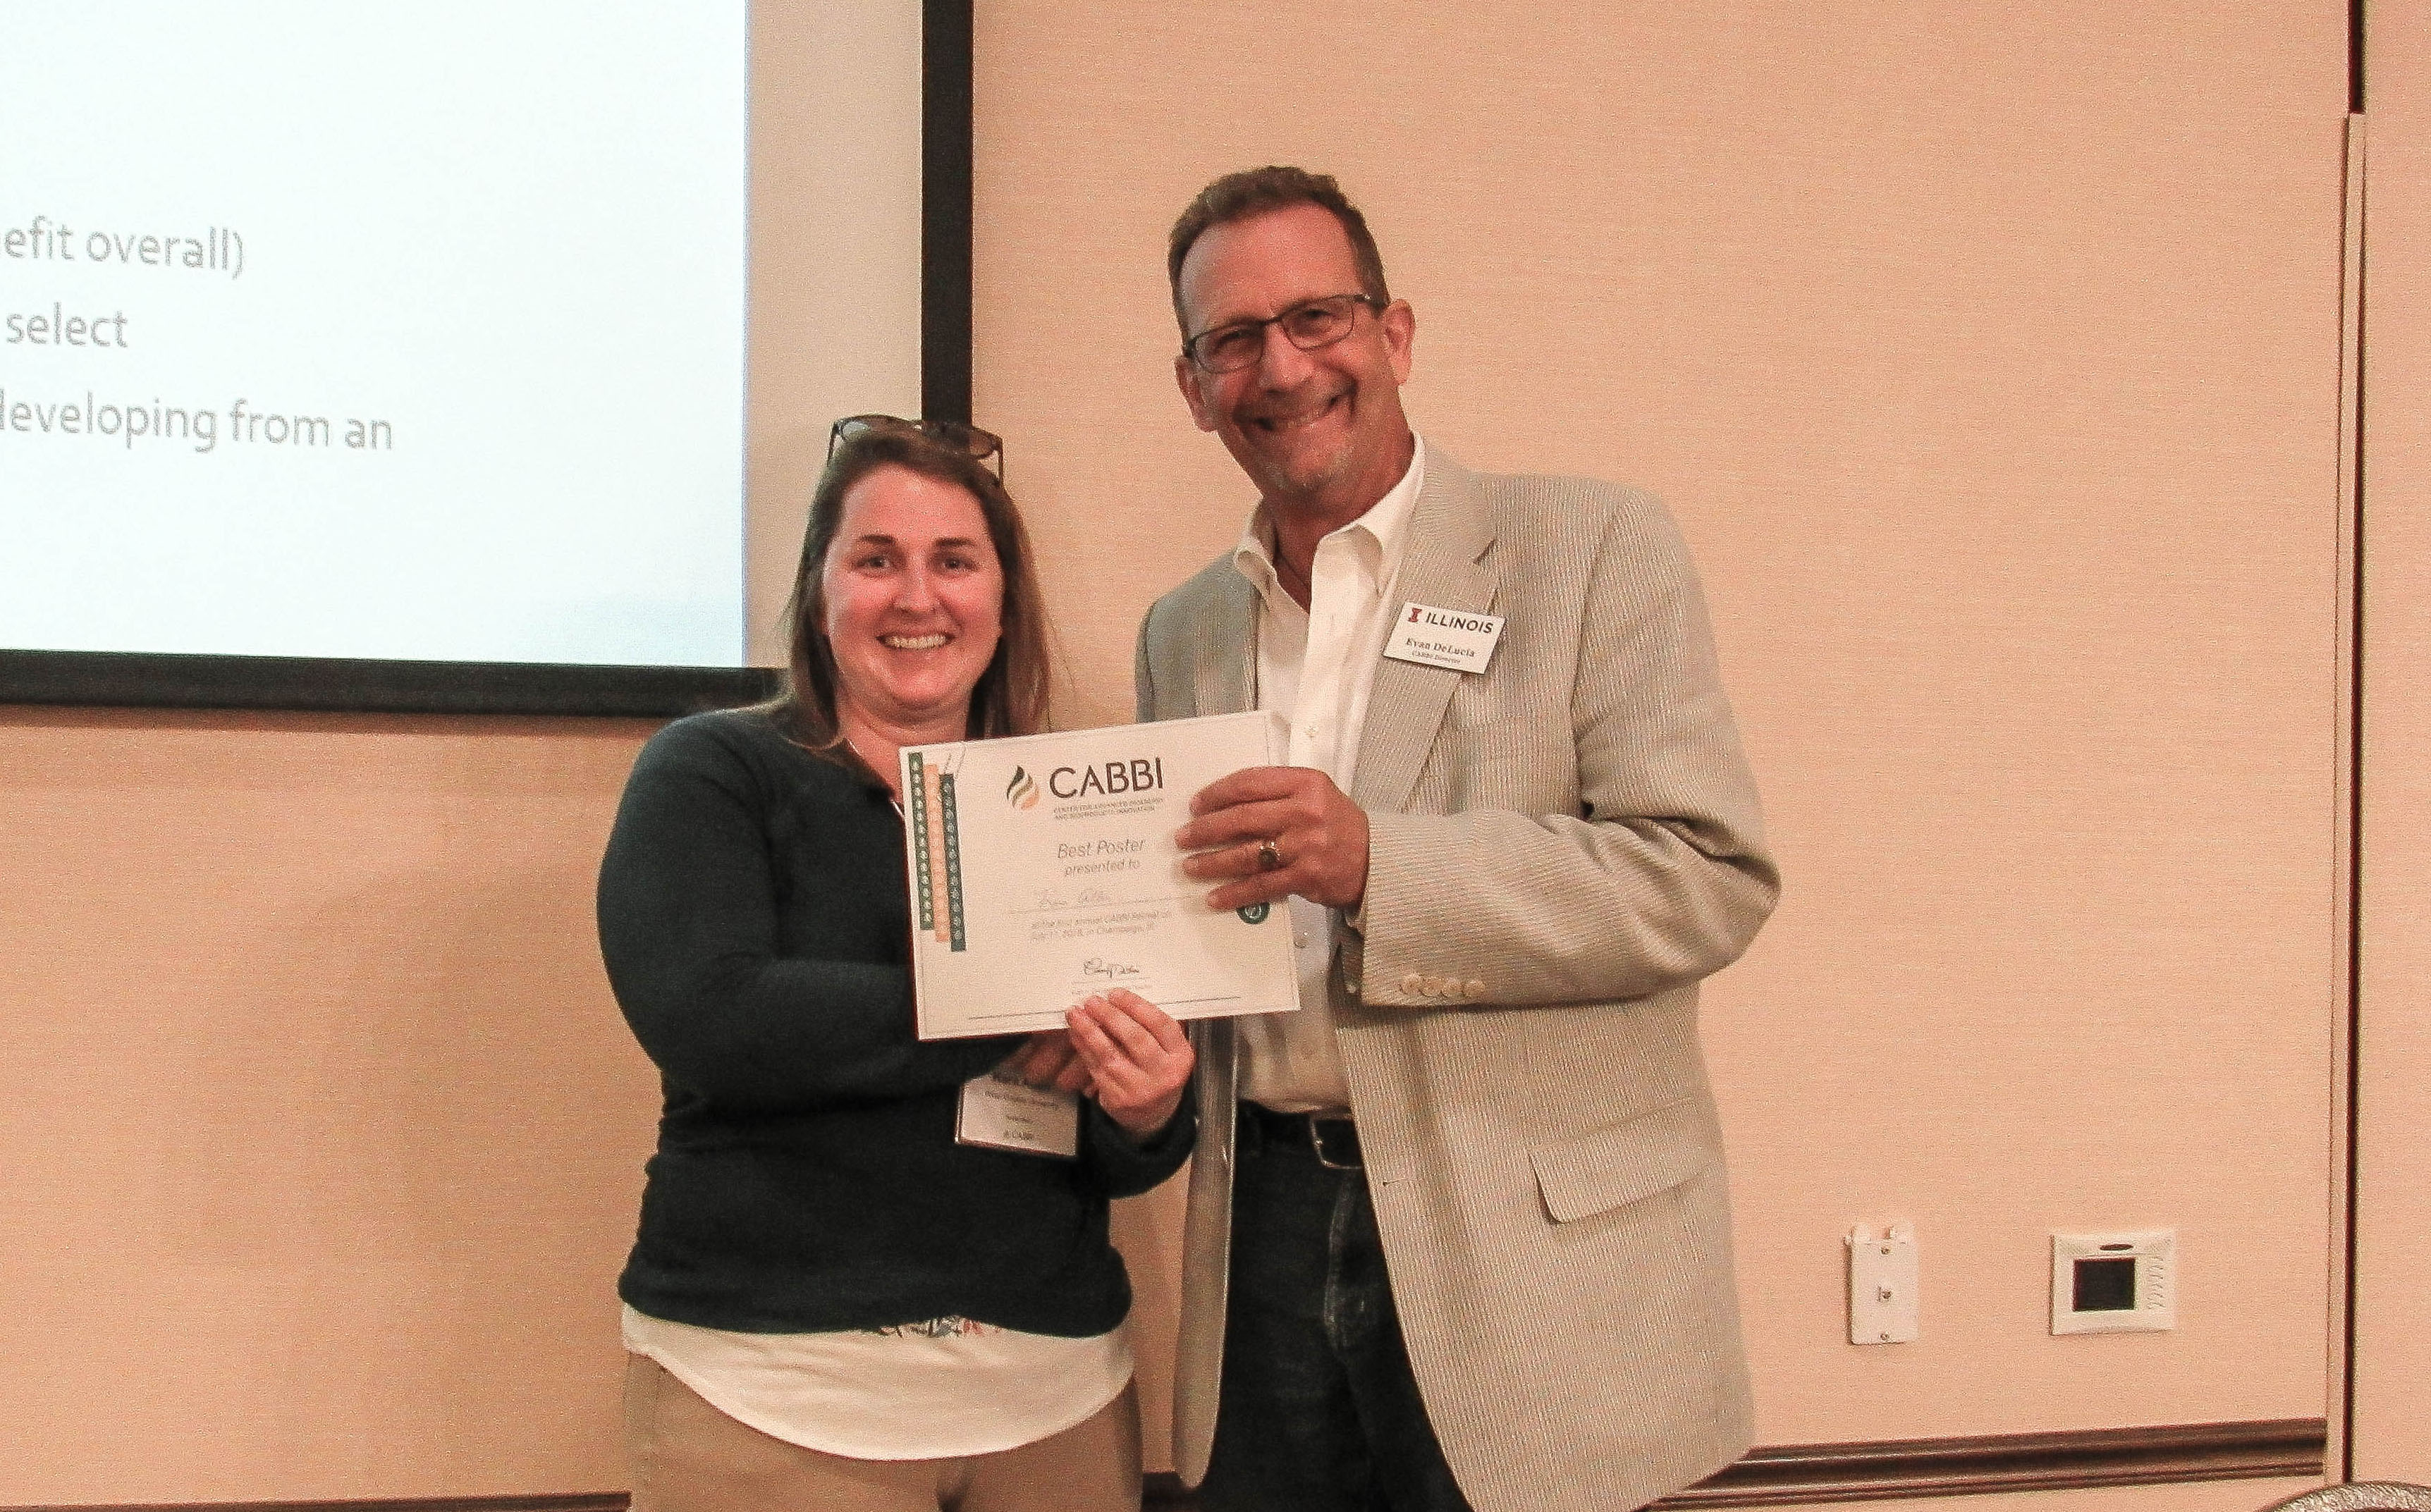 Poster Session winner Kara Allen, a postdoc in the Sustainability theme from West Virginia University, is presented her certificate and travel award by CABBI Director Evan H. DeLucia.